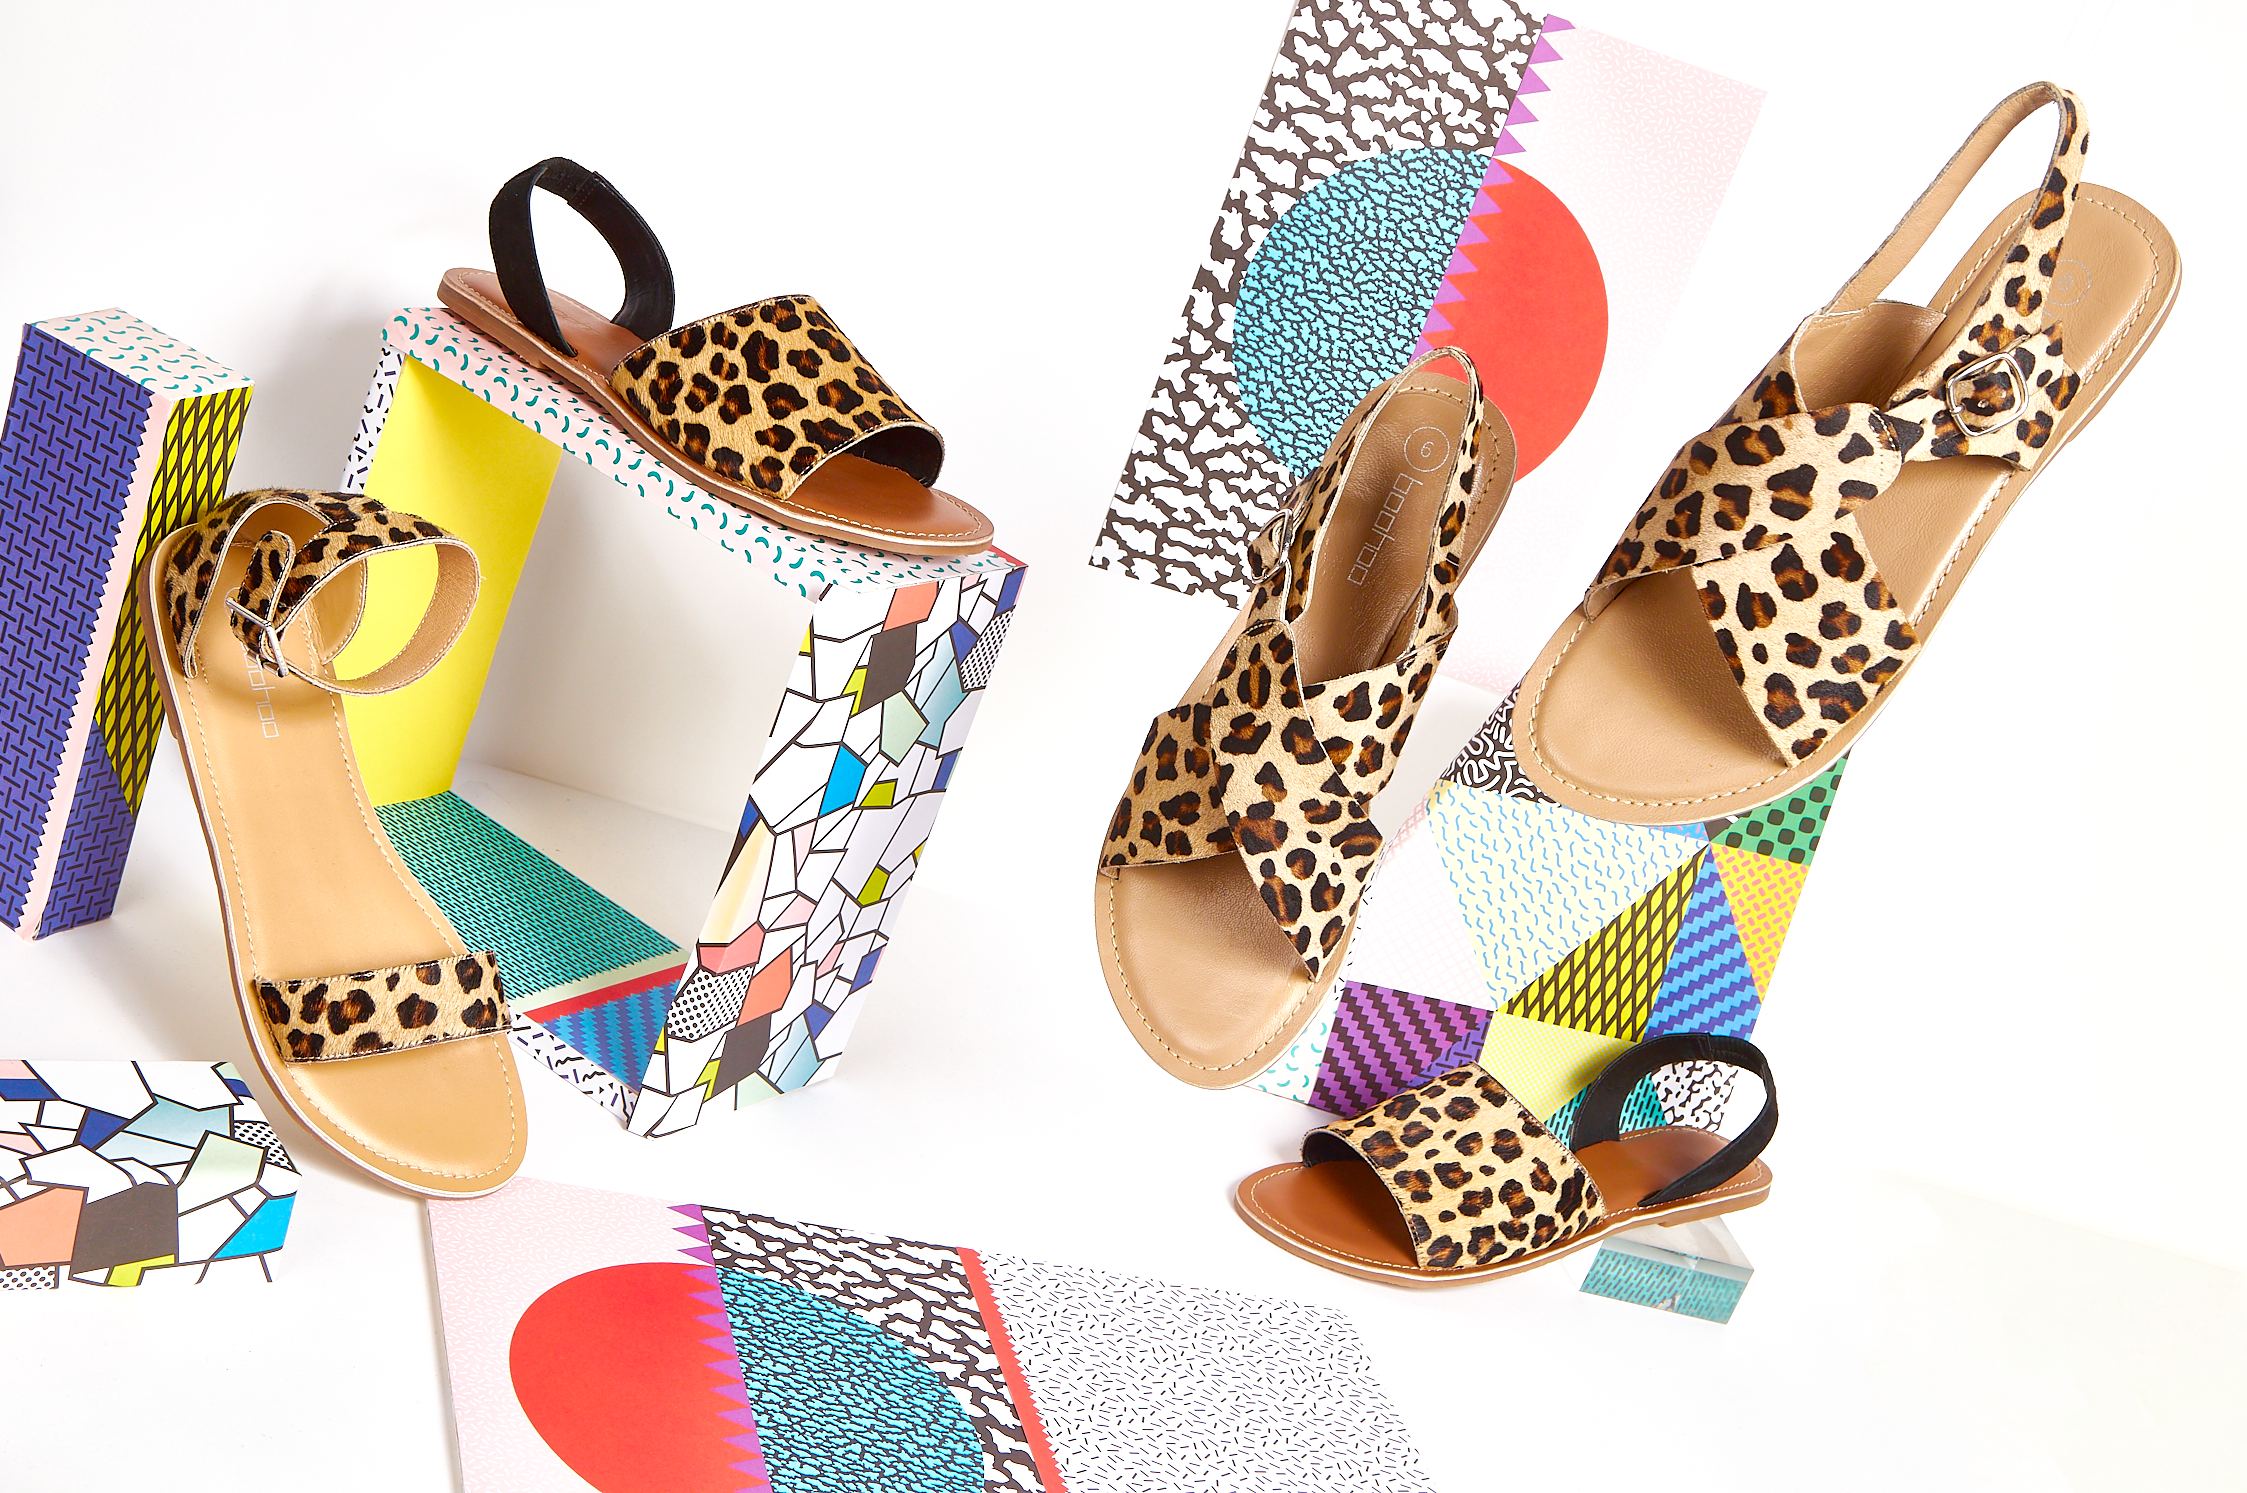 Get Your Kicks: 10 New Shoes You Need To Know About